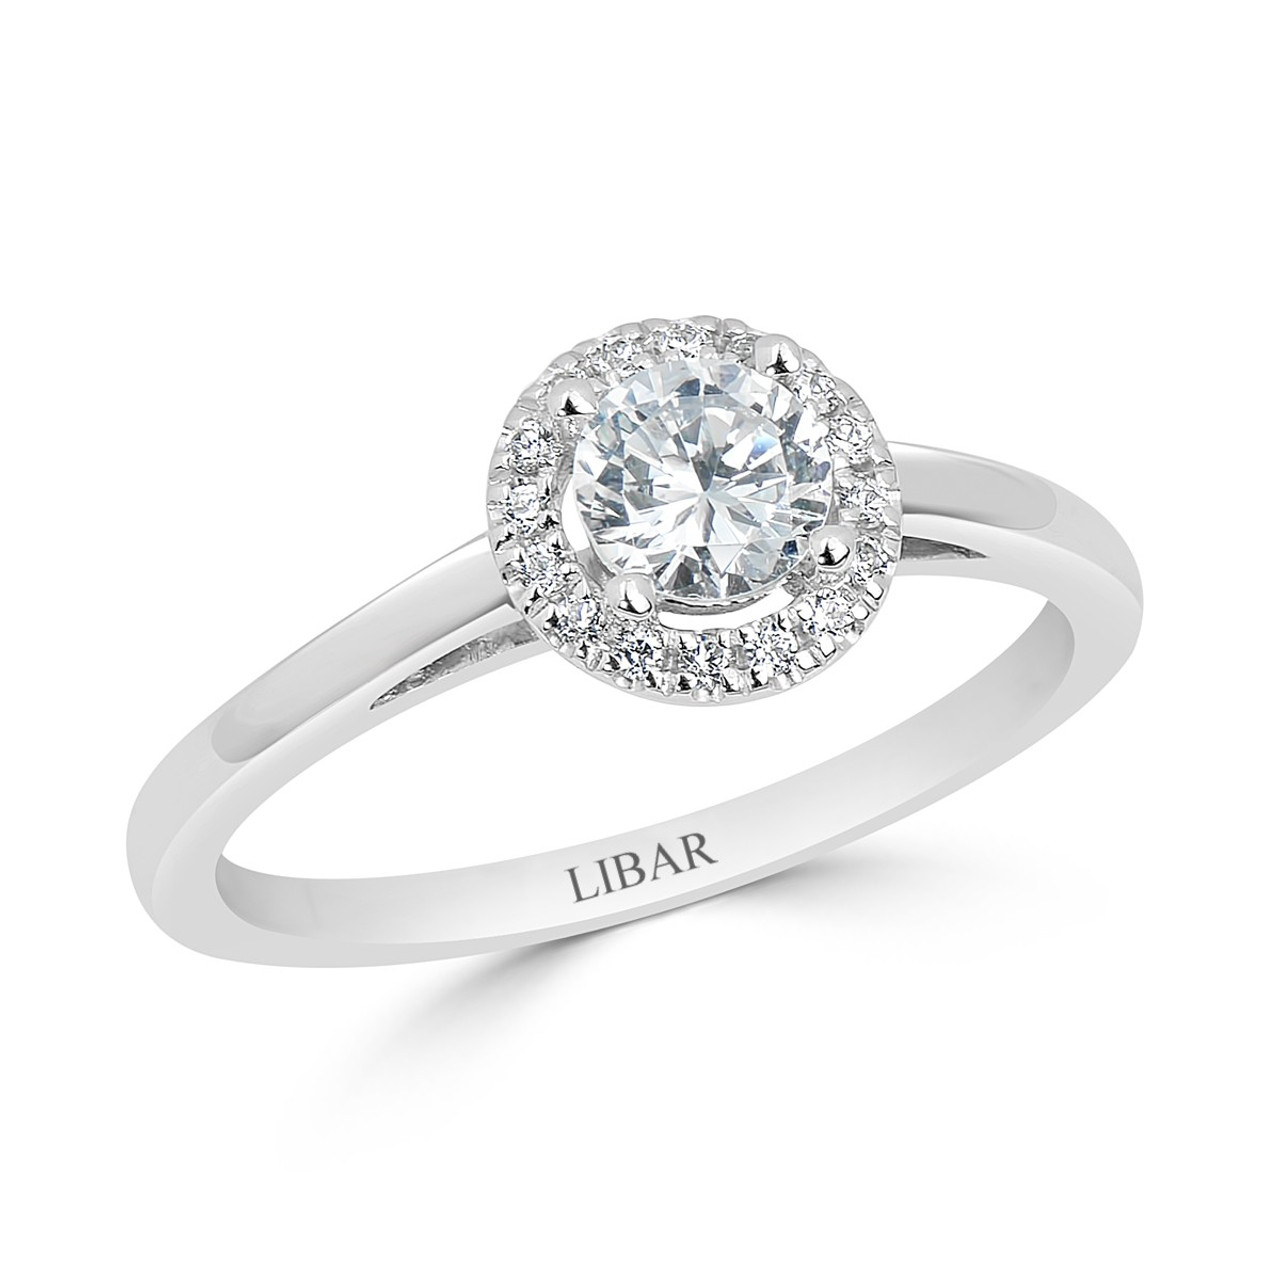 ring engagement bloom birks wedding solitaire en round diamond rings